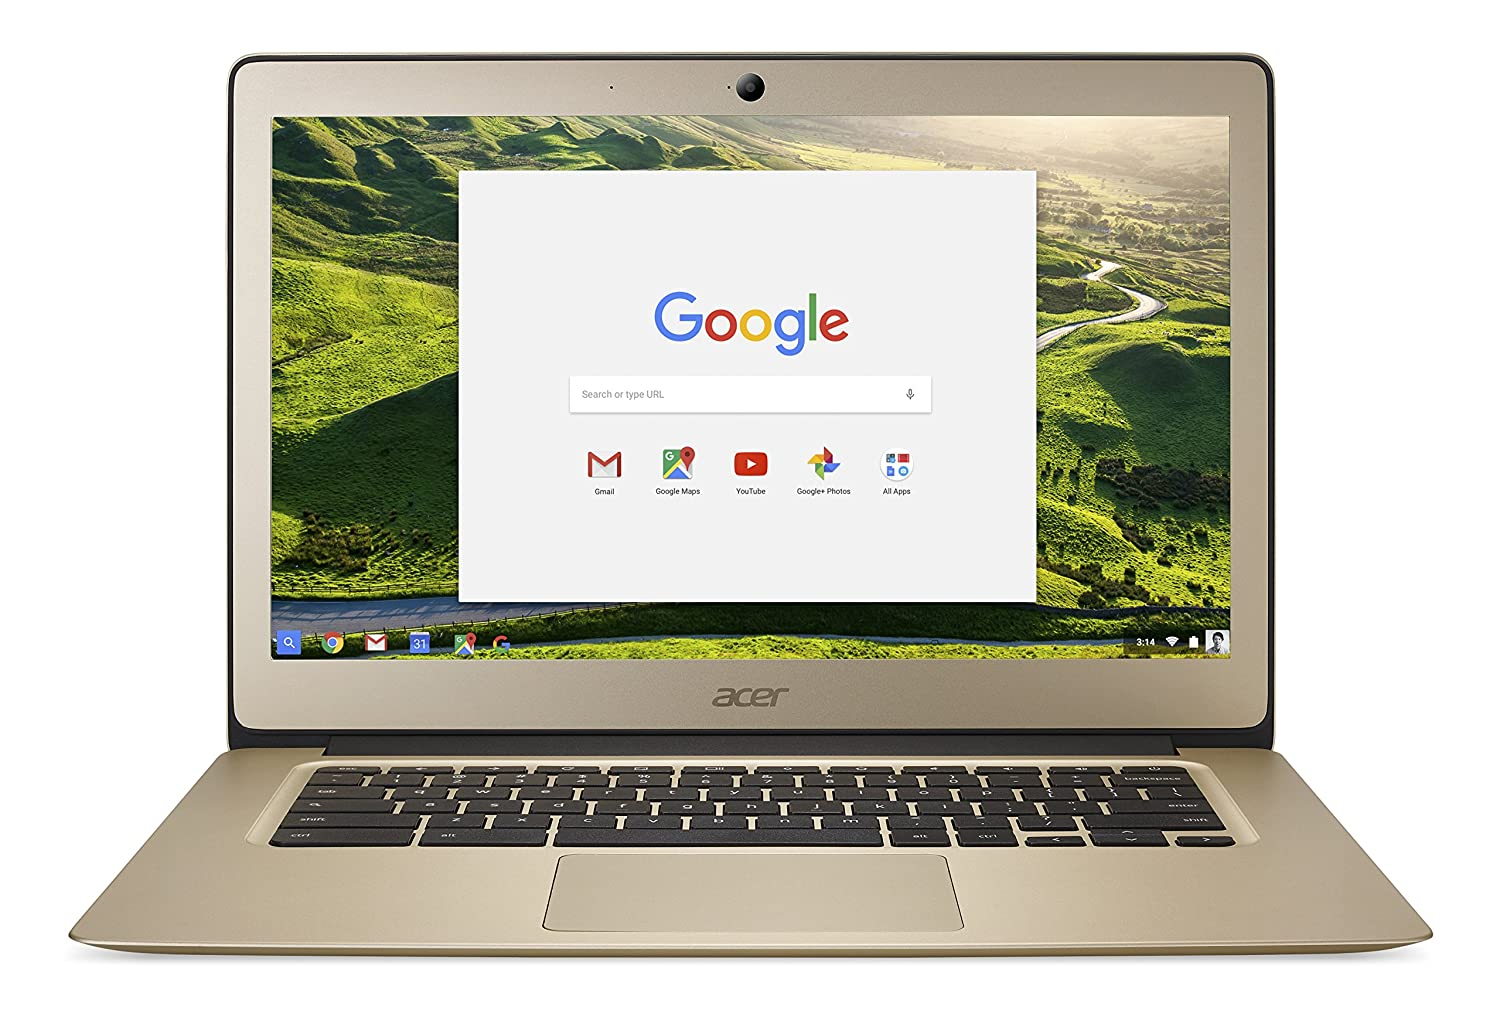 Amazon.com: Acer Chromebook 14, Aluminum, 14-inch Full HD, Intel Celeron  N3160, 4GB LPDDR3, 32GB, Chrome, Gold, CB3-431-C0AK: Computers & Accessories